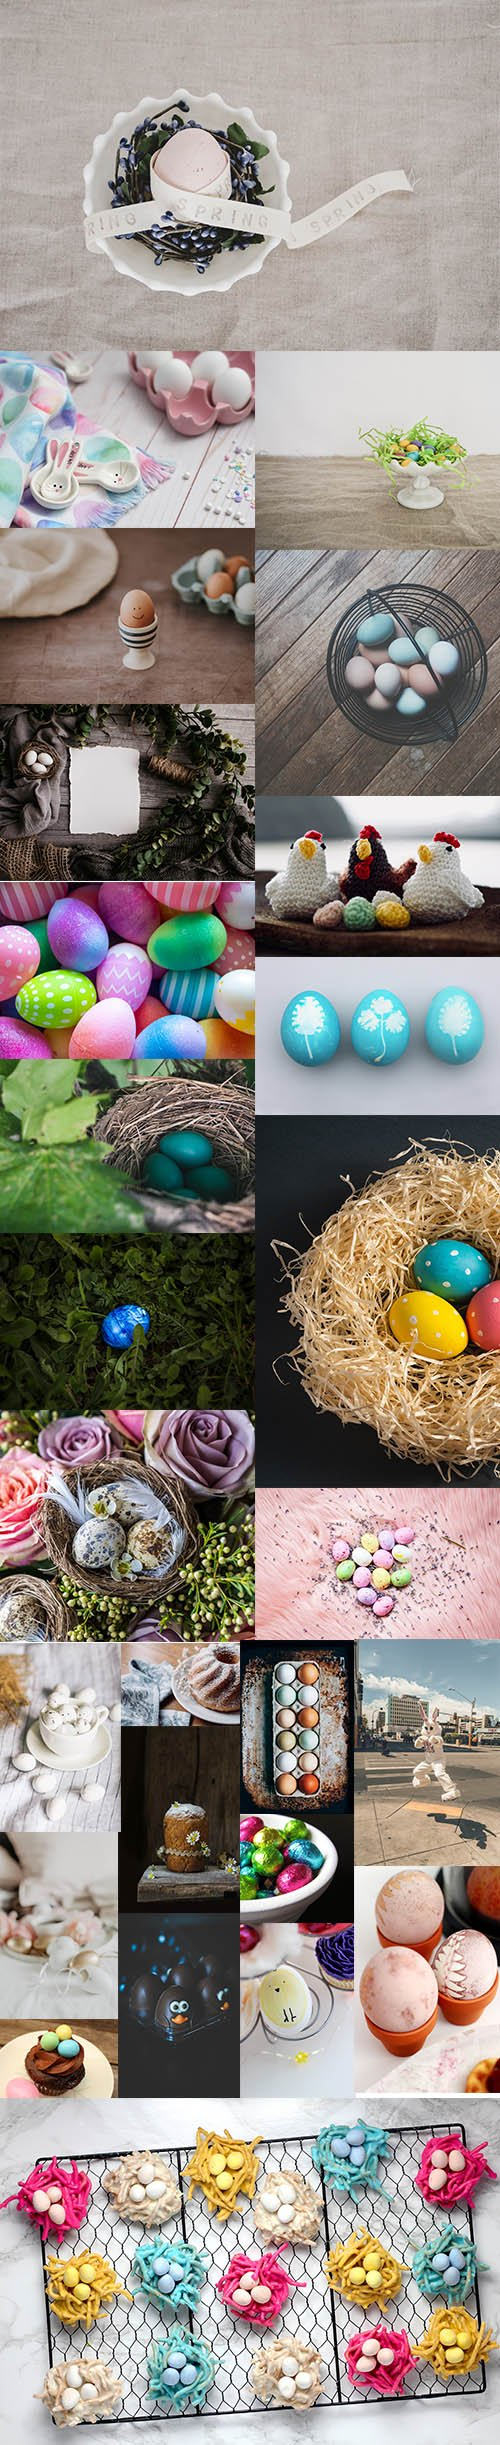 Happy Easter Bundle - UHQ Stock Photo Vol 2